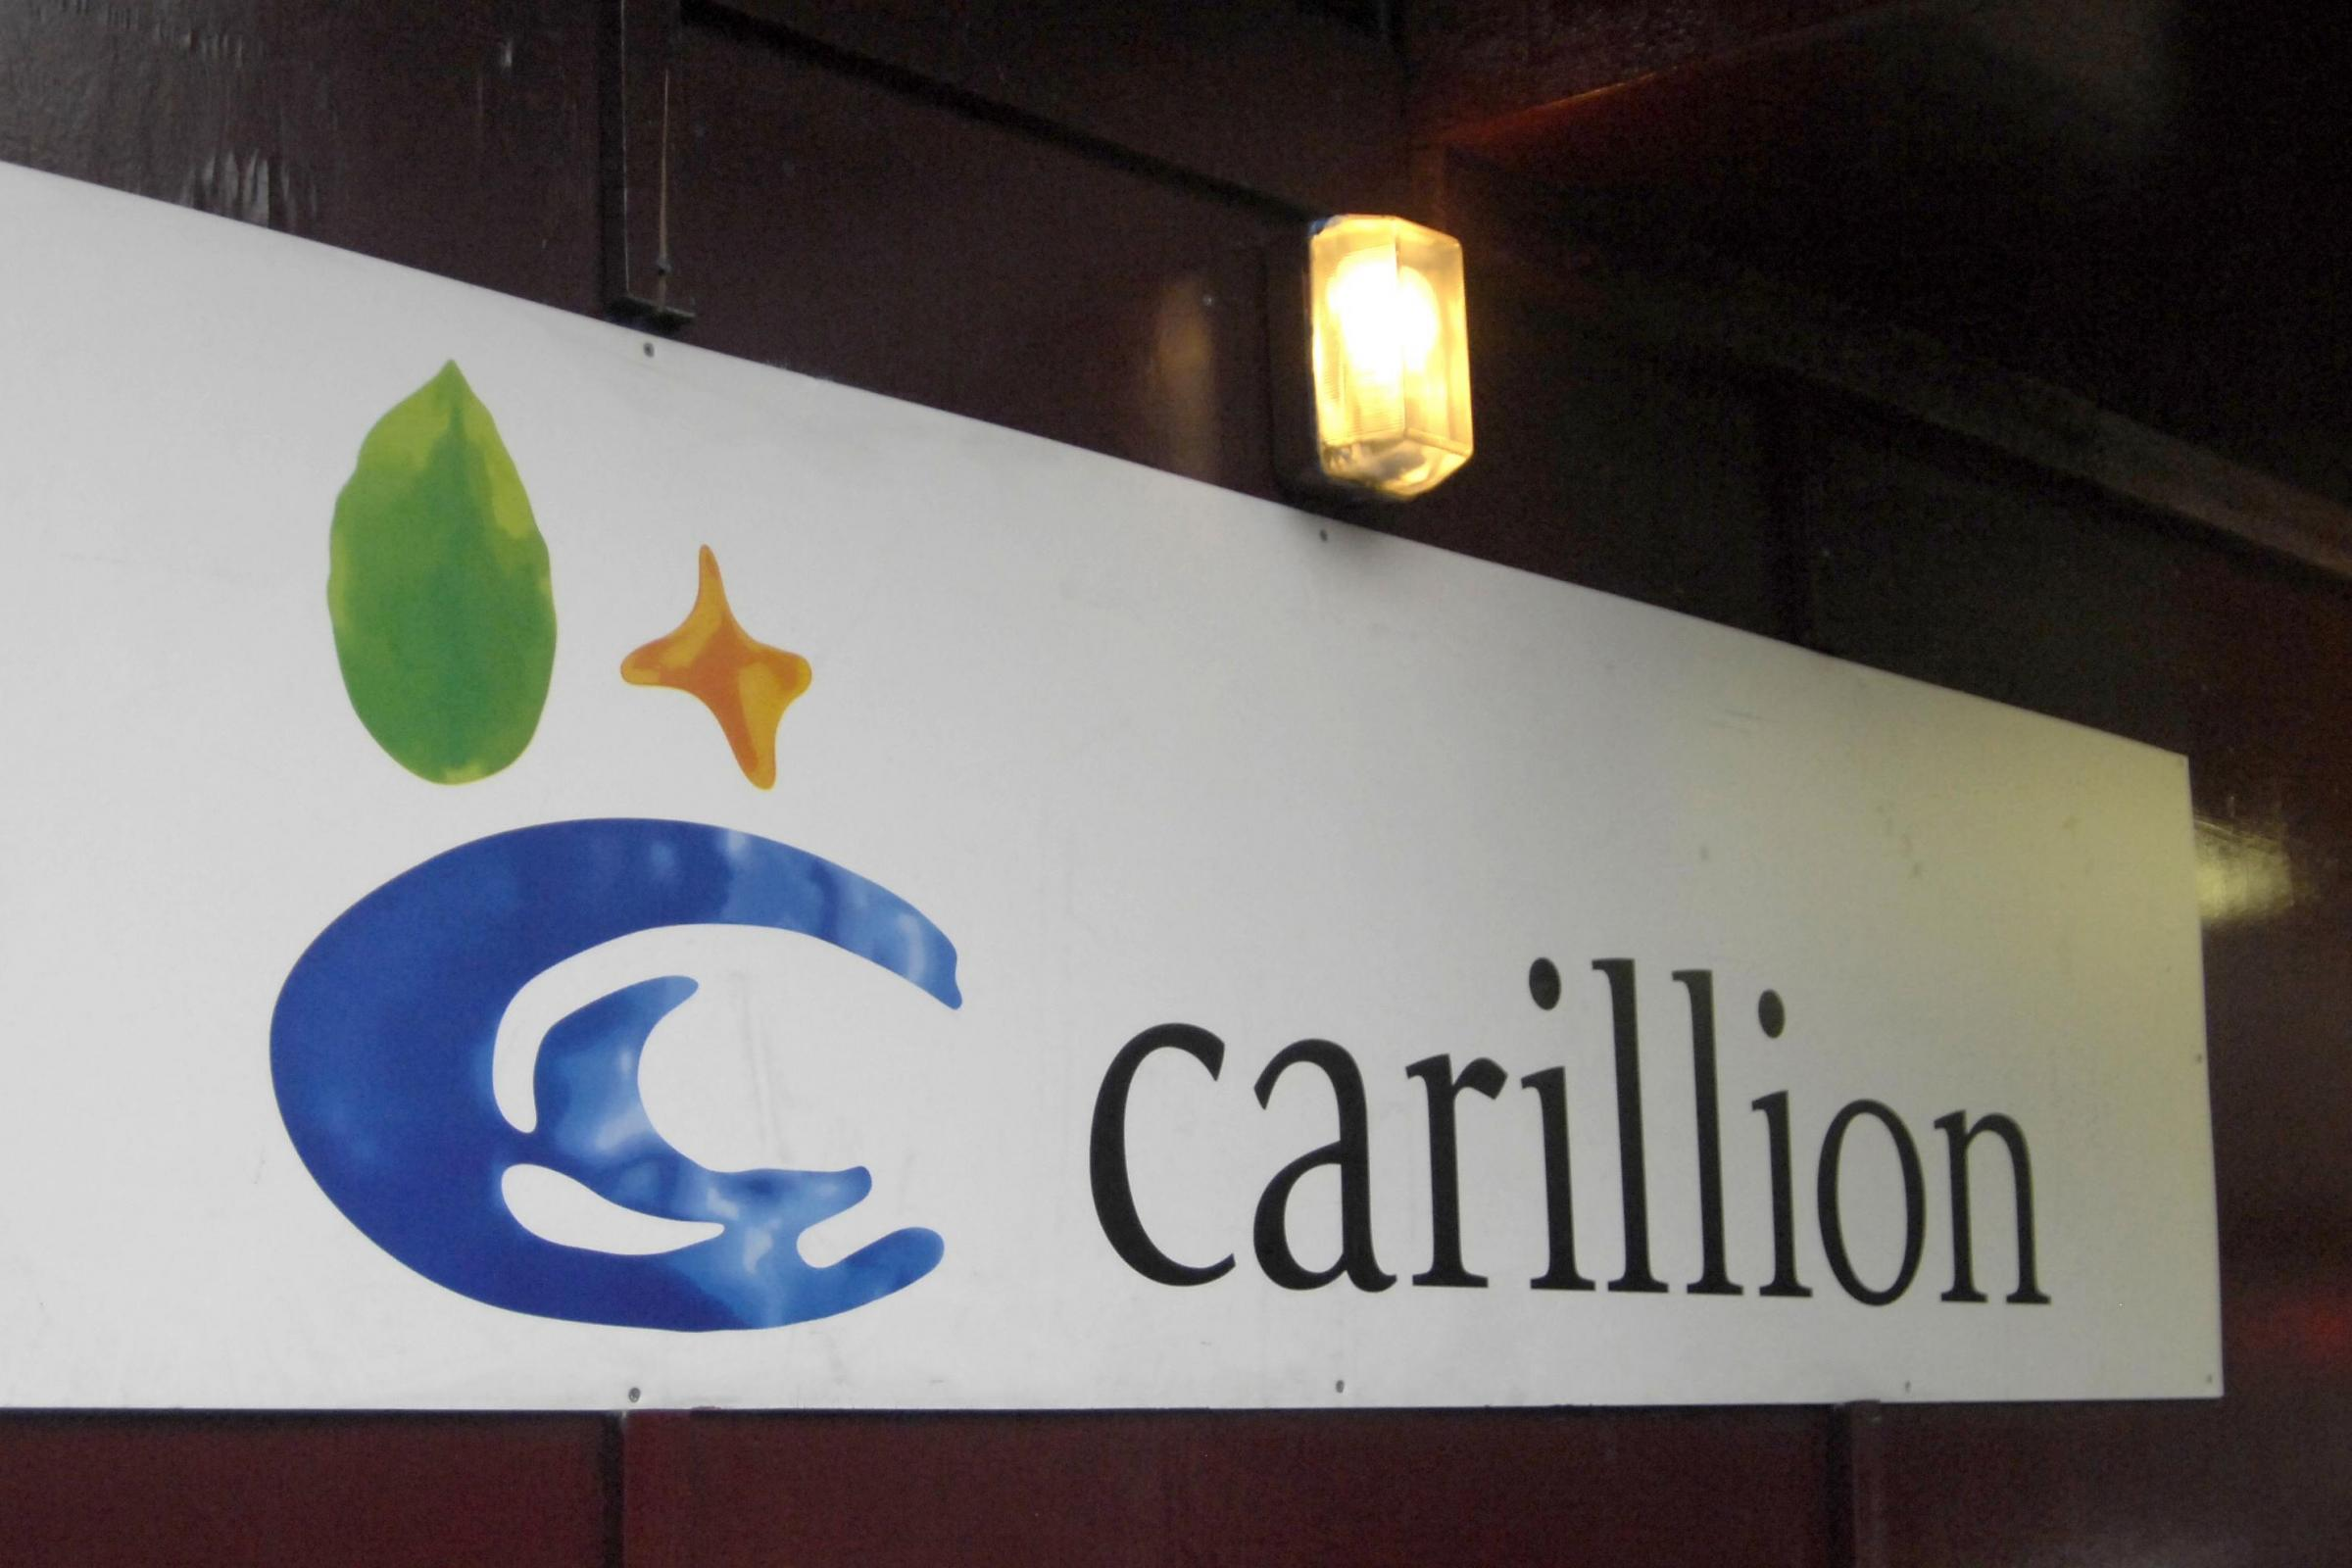 Government and stakeholders are meeting over Carillion's future (PA)